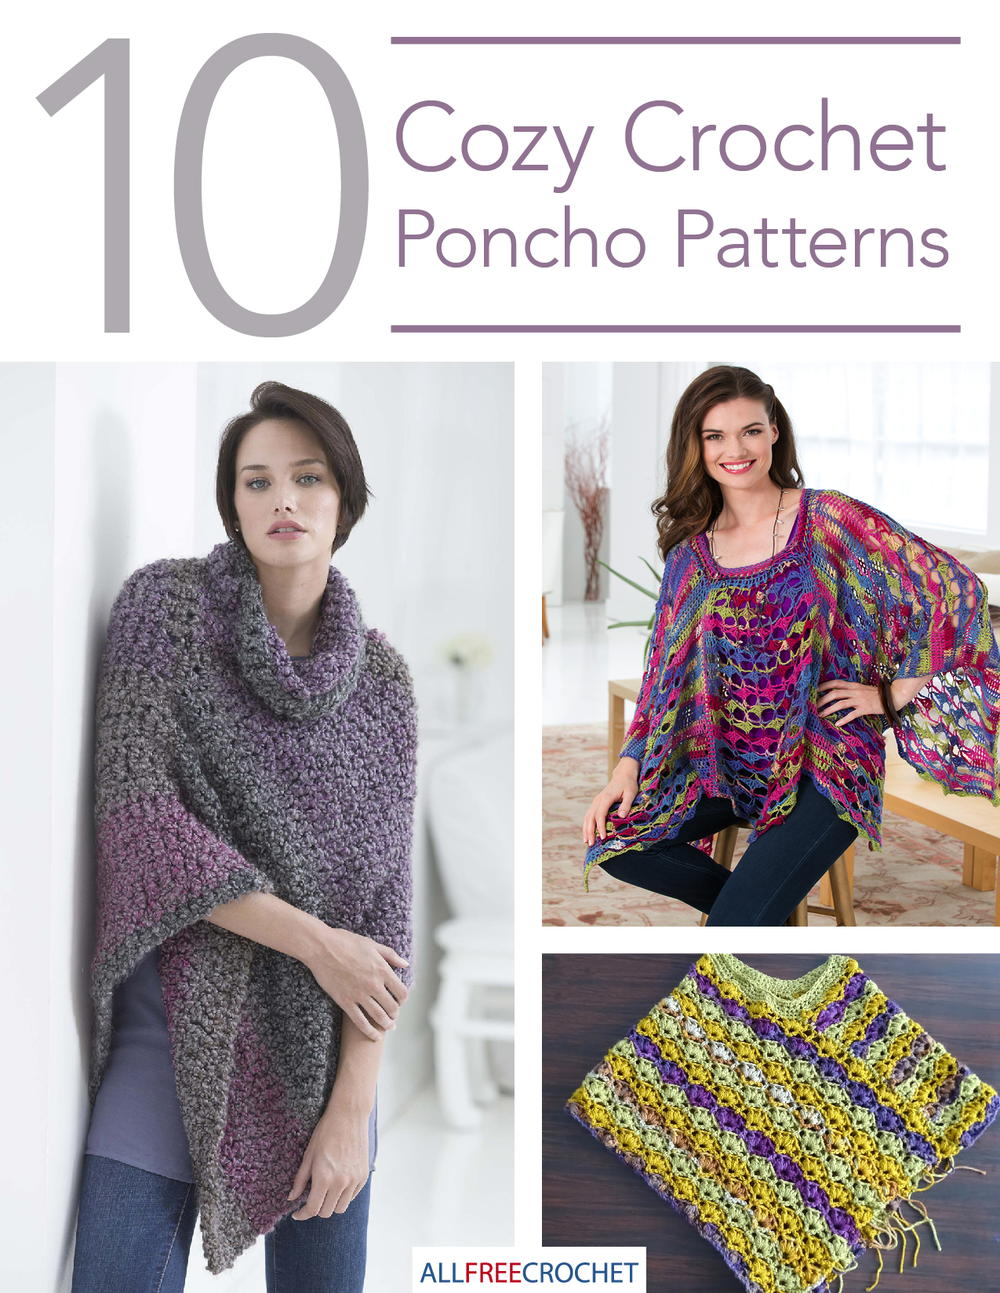 10 cozy crochet poncho patterns allfreecrochet bankloansurffo Choice Image